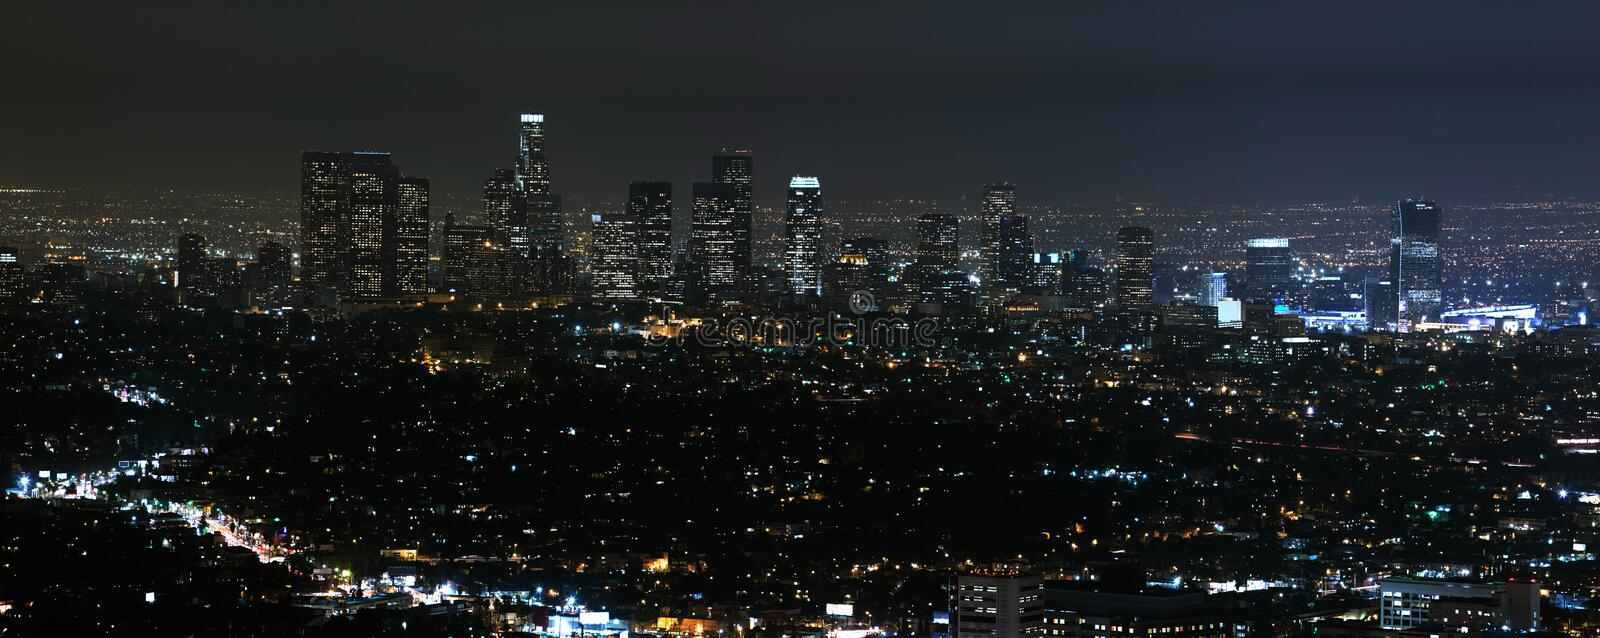 Download Los Angeles Cityscape stock photo. Image of urban, architecture - 14065226